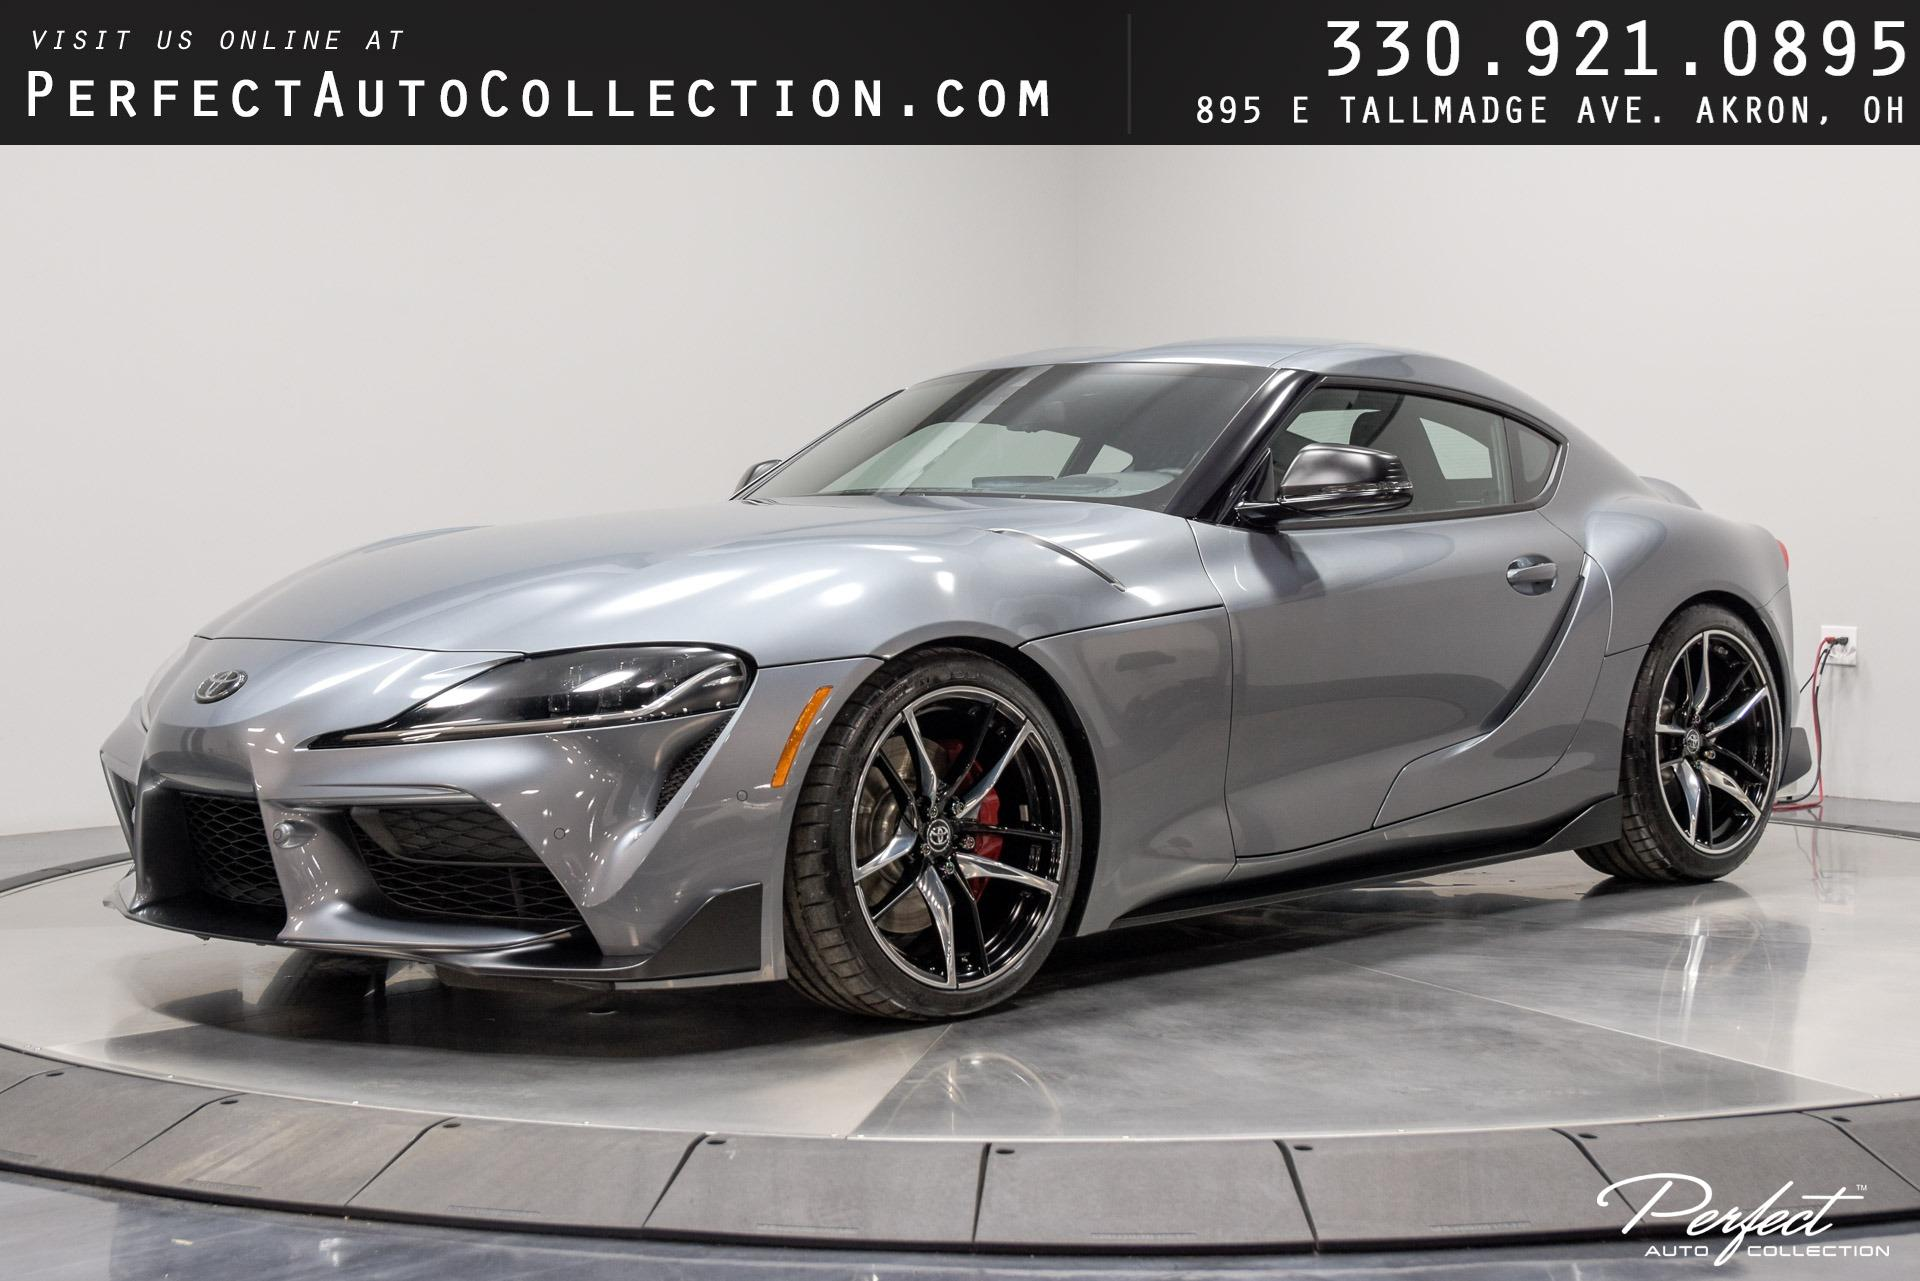 Used 2020 Toyota GR Supra 3.0 Premium for sale $51,495 at Perfect Auto Collection in Akron OH 44310 1